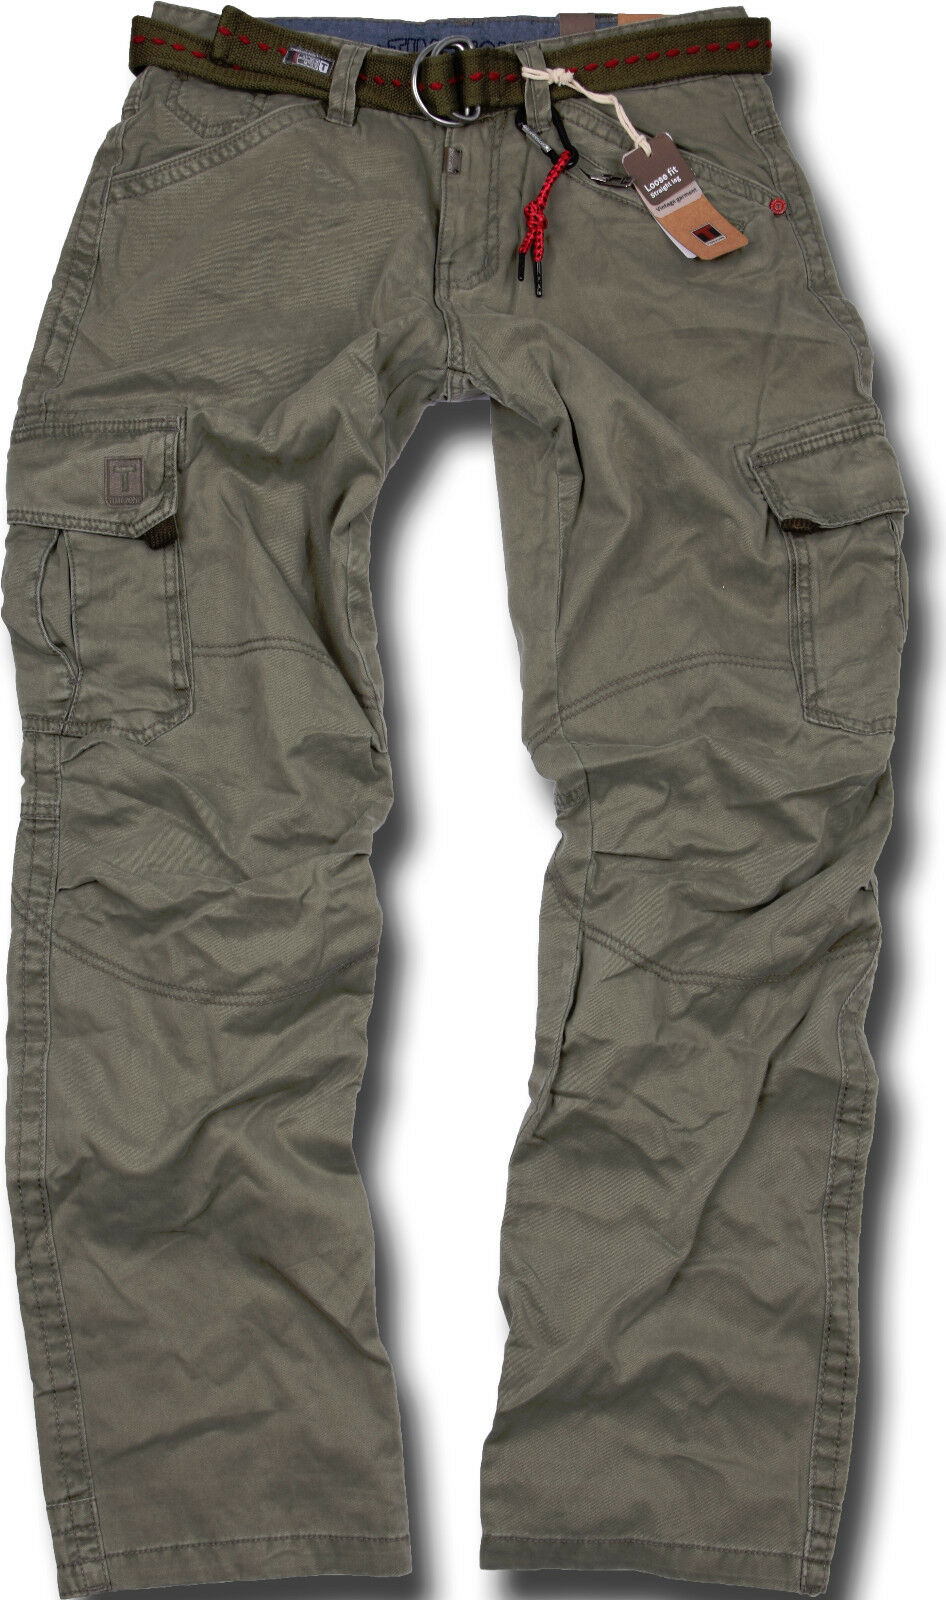 Timezone Men's Cargo Trousers Benito Olive Outdoor 4019 Jeans